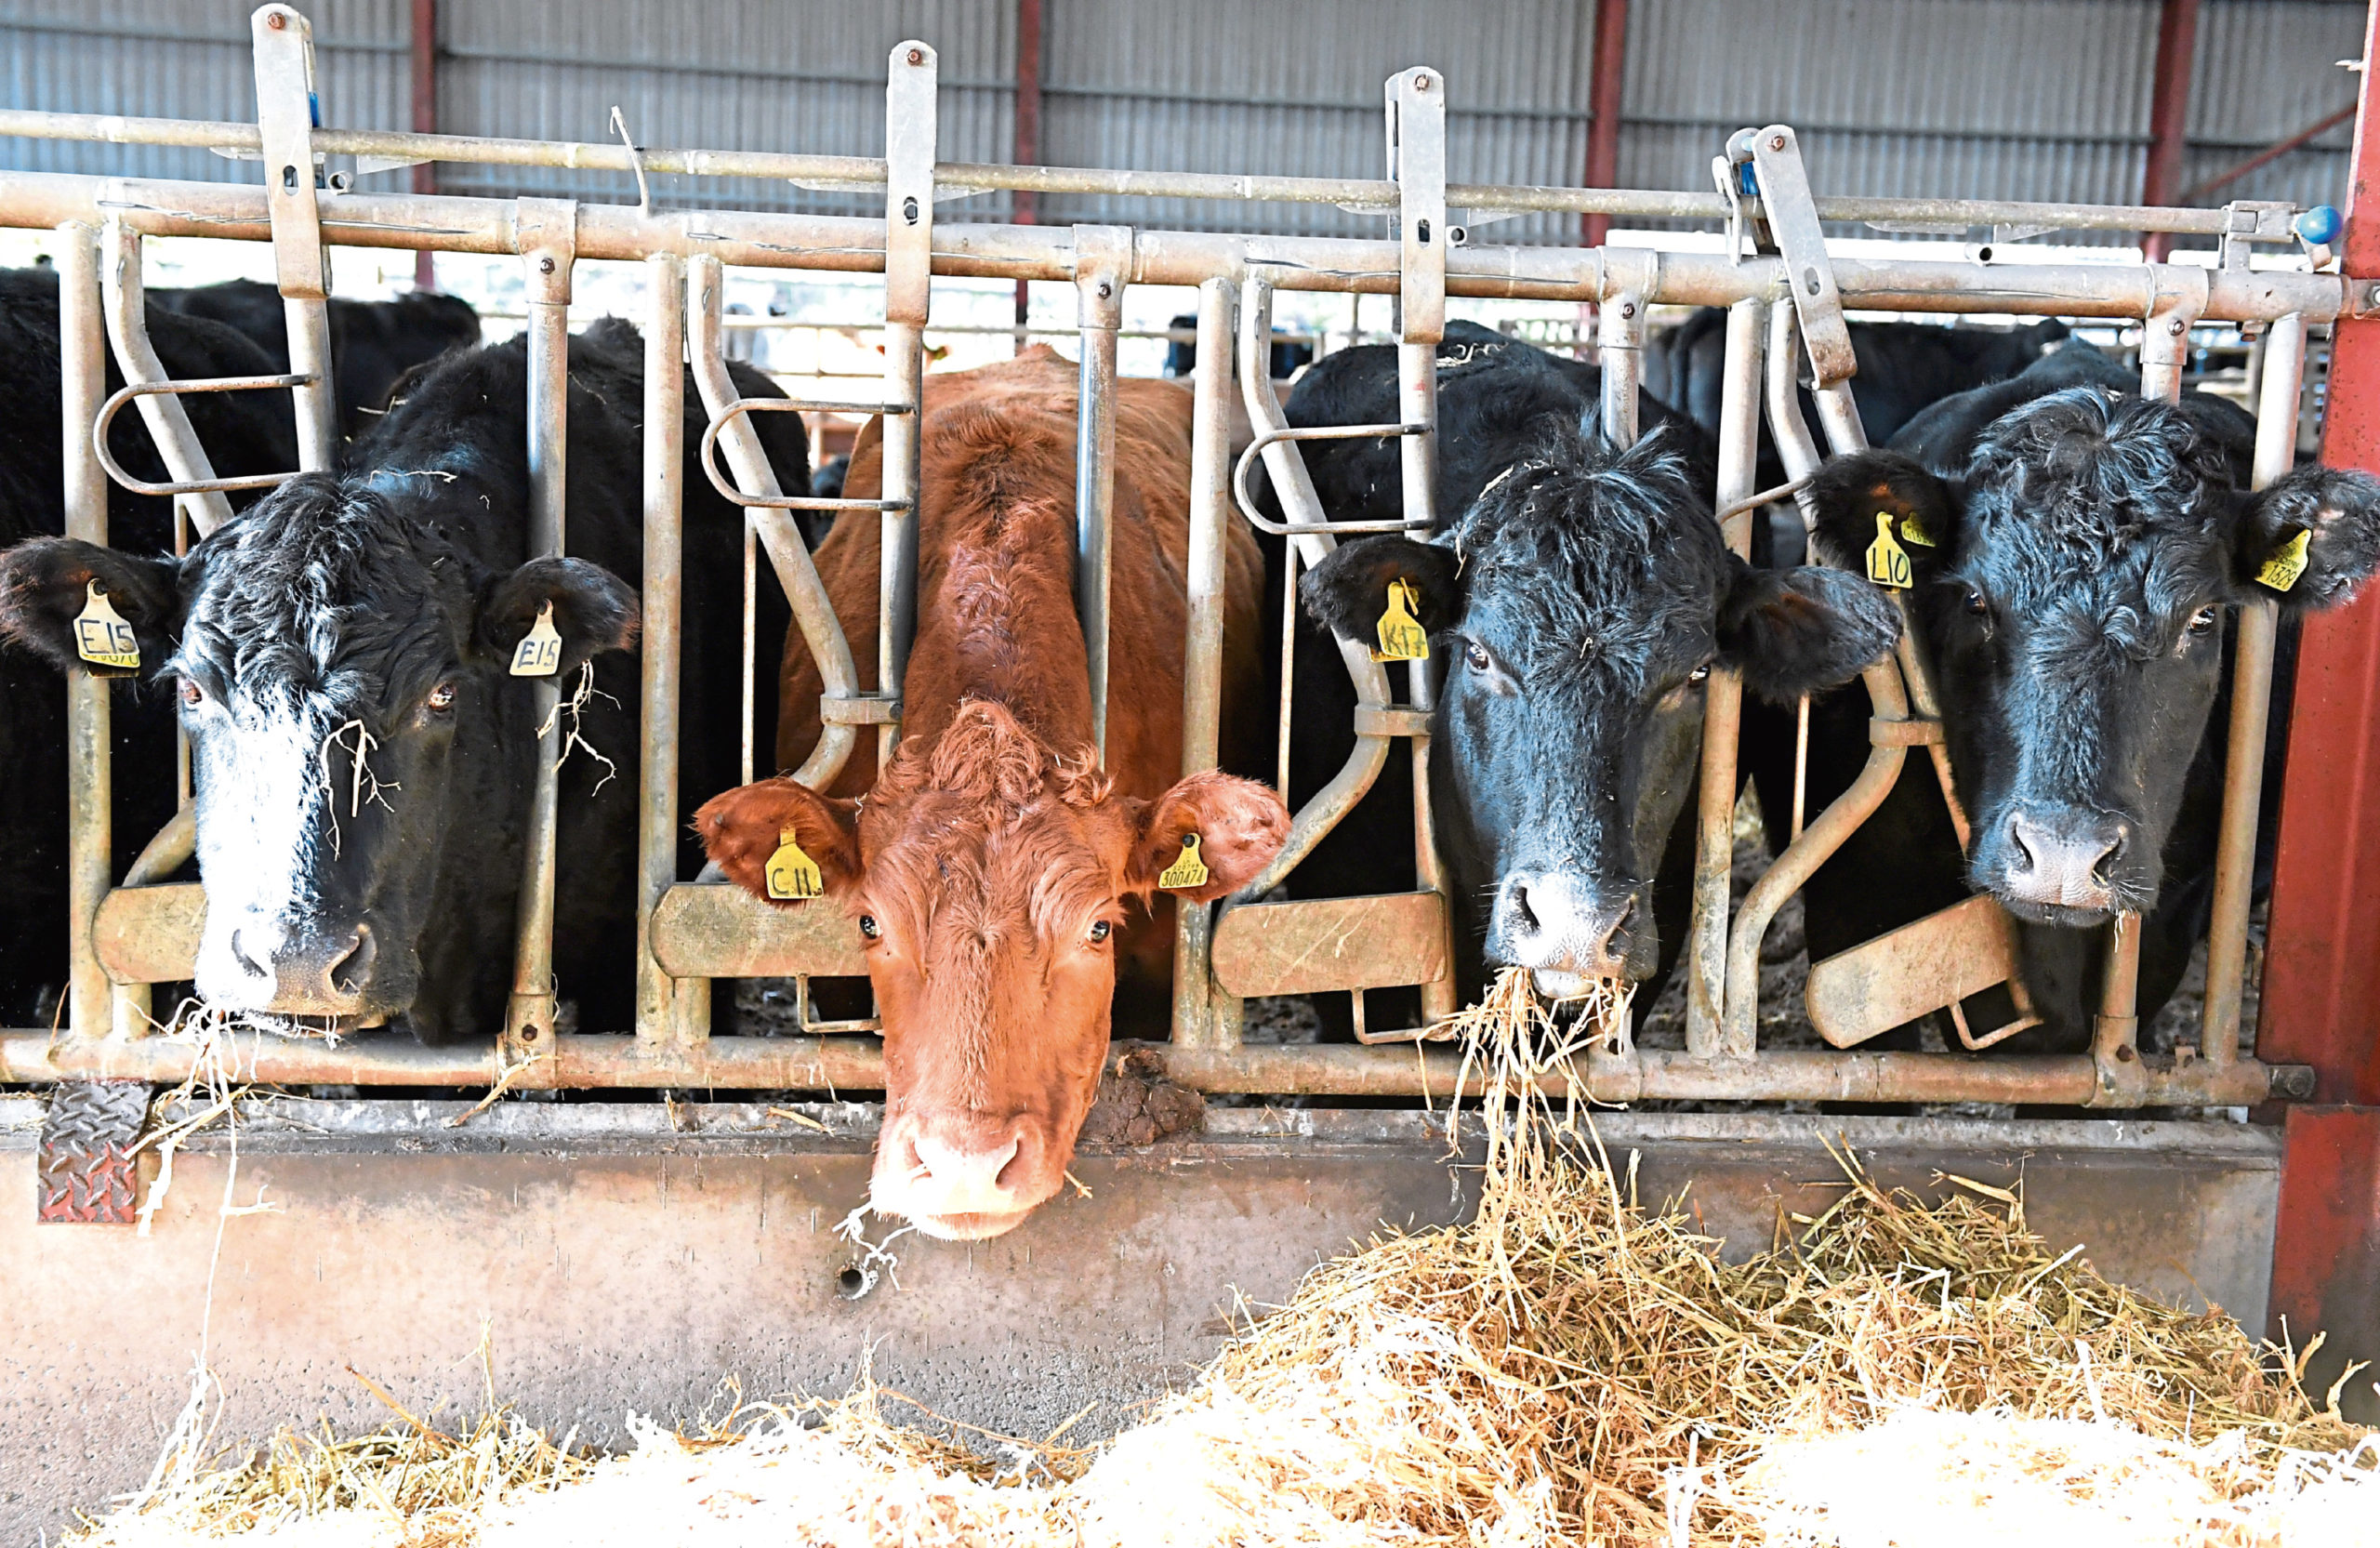 Scotland's livestock sector is becoming increasingly reliant on imported soya for animal feeds.